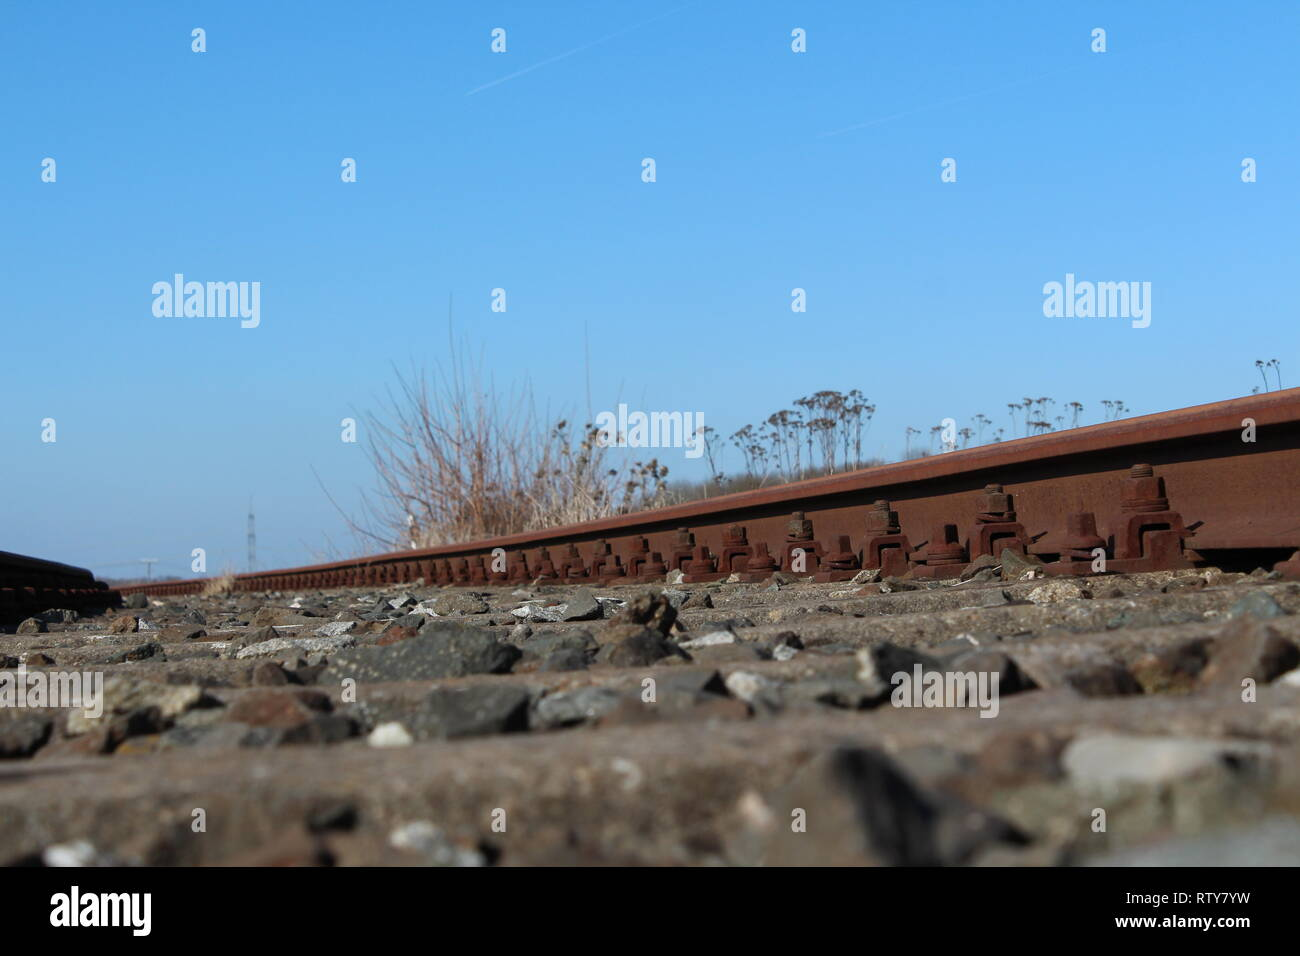 Disused track - Stock Image